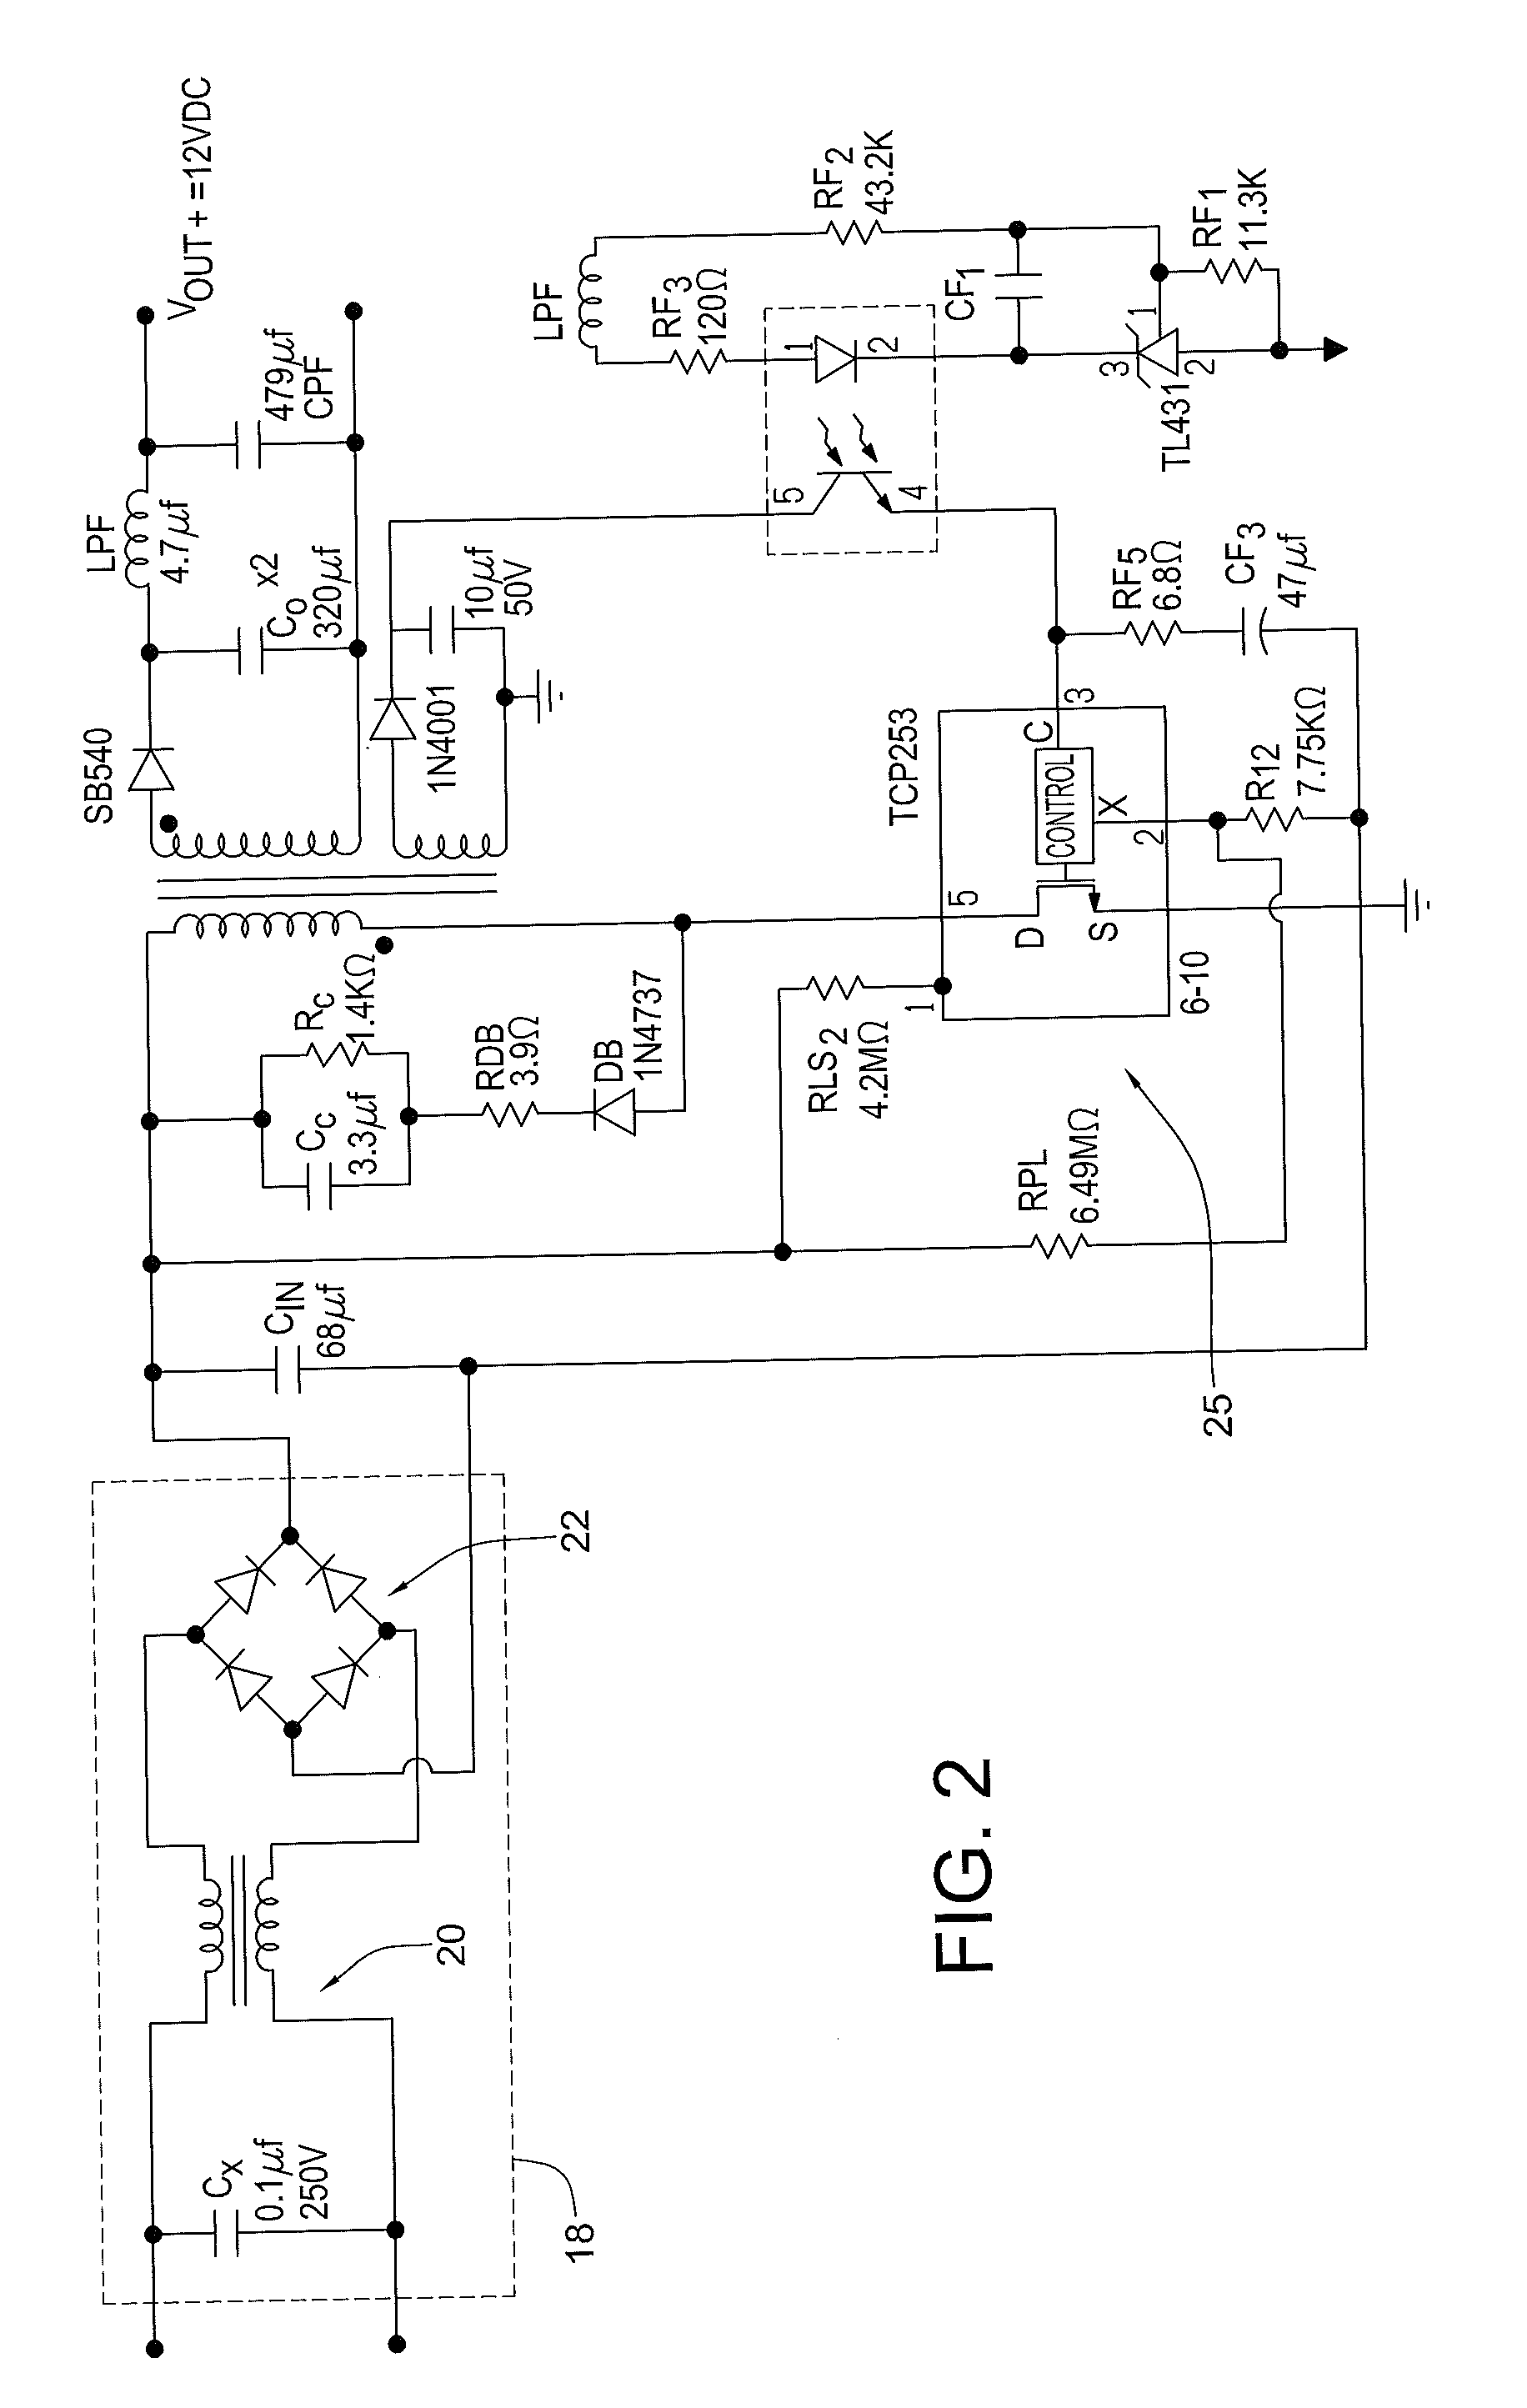 Patent Us20120062133 Low Voltage Led Dimmer With Integrated 0 10v Potentiometer As Variable Resistor 555 Timer Drawing